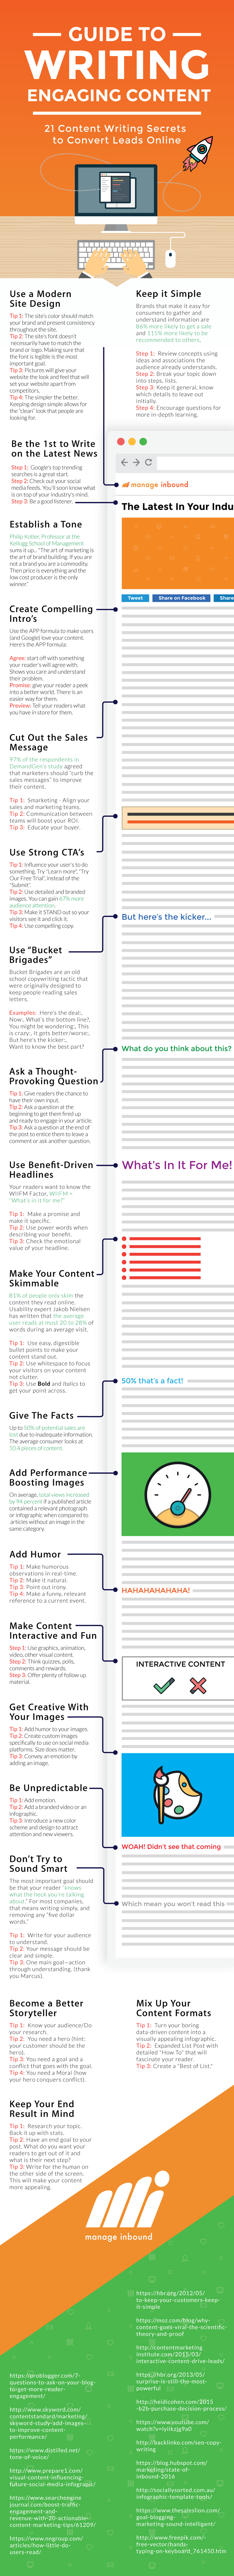 21-ways-content-appealing-infographic.png